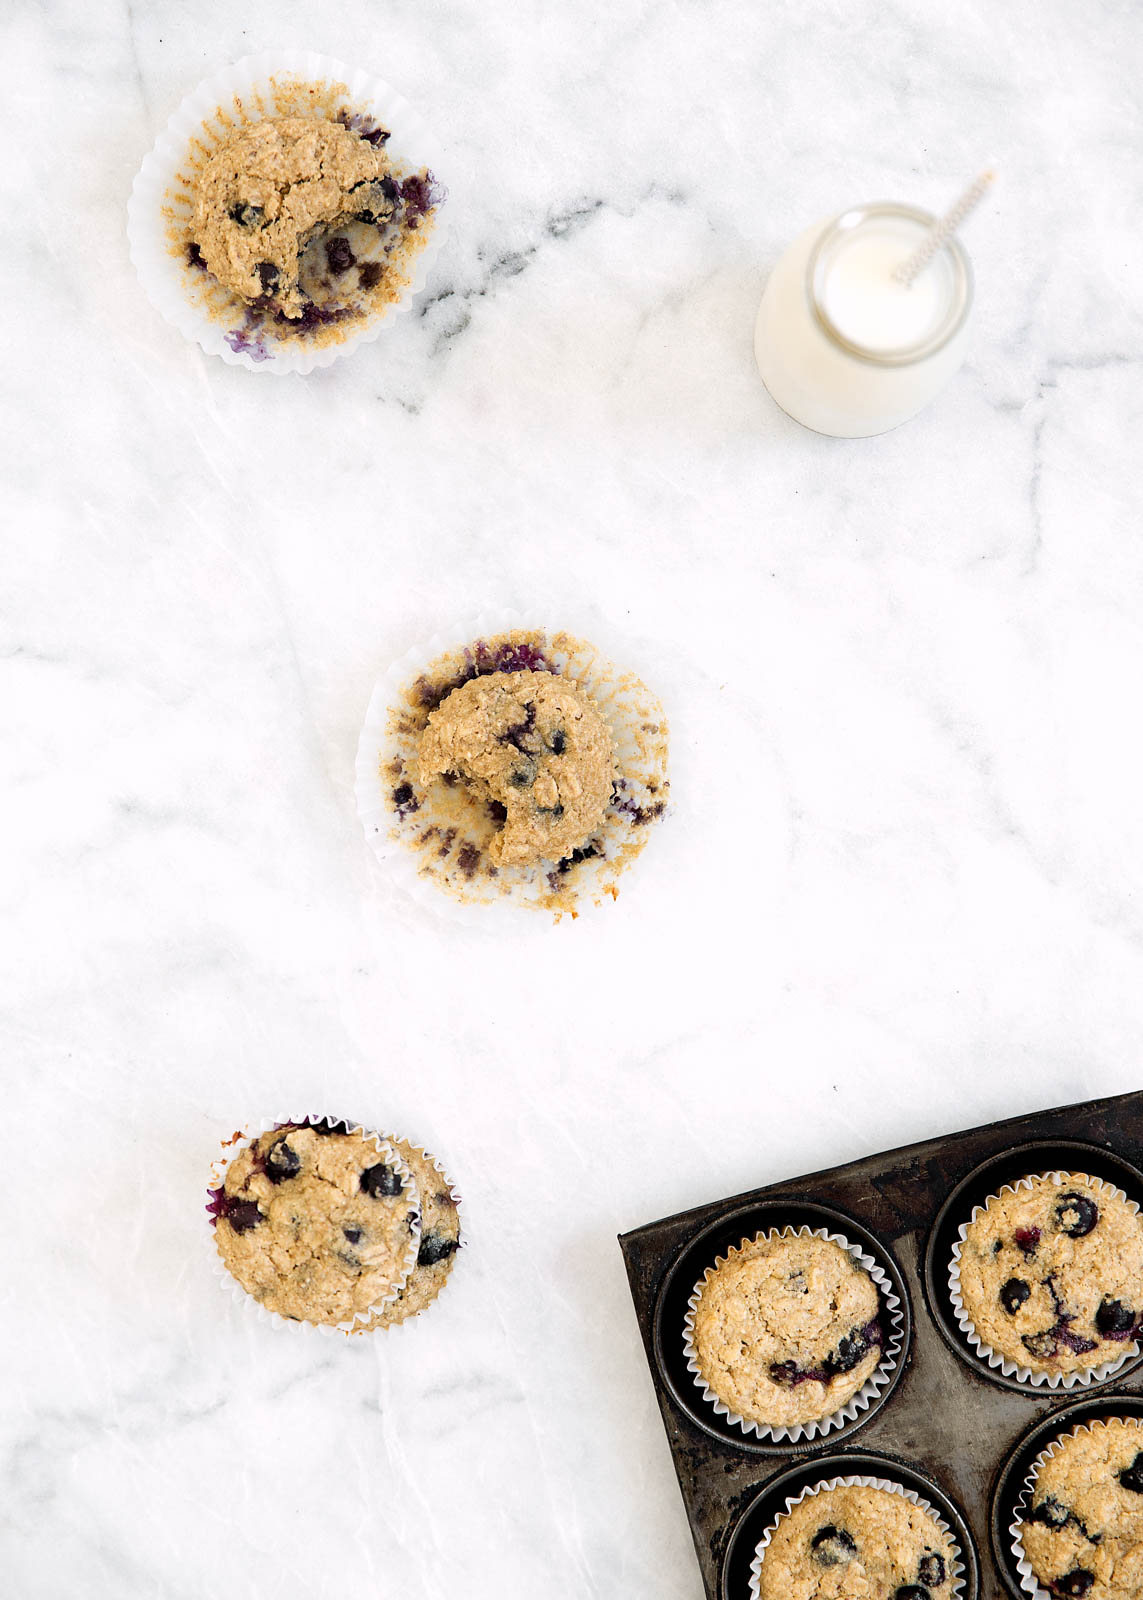 These refined sugar-free, gluten-free blueberry banana oat flour muffins are so velvety soft and moist, your taste buds won't even notice they're healthy!